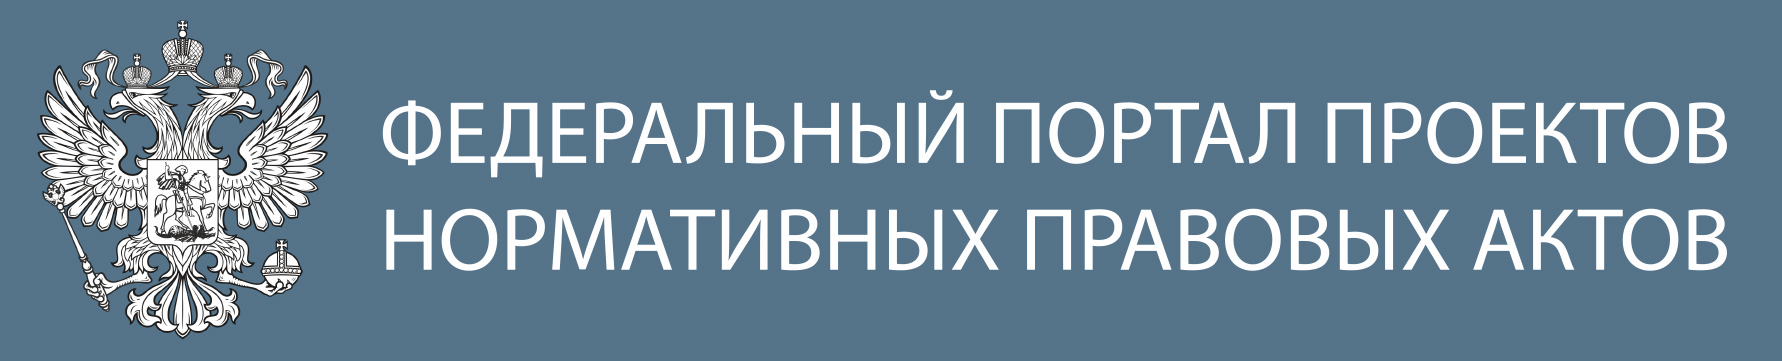 regulation.gov.ru